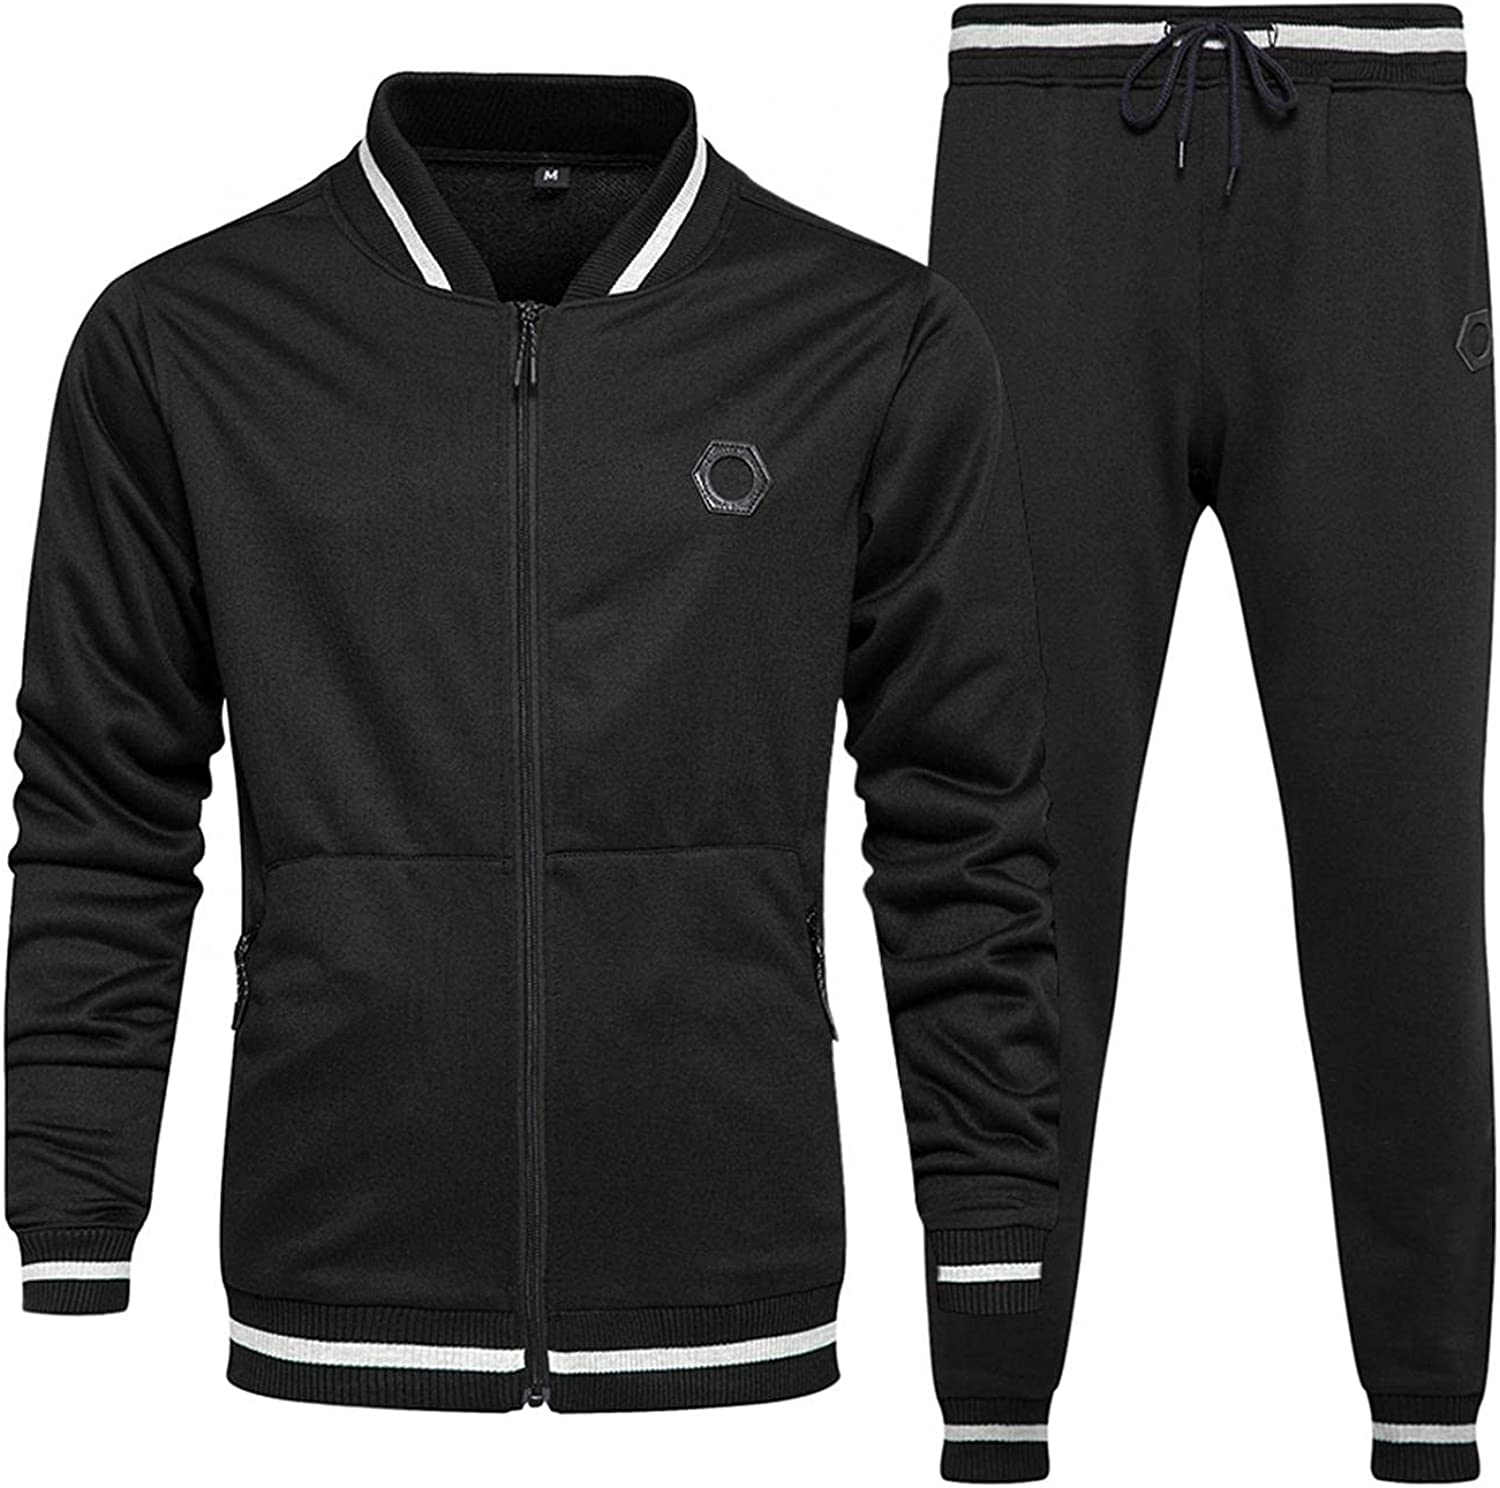 Mens 2 Piece Tracksuits Stand Collar Full Zipper Sport Coats & Long Pants Casual Slim Fit Workout Athletic Outfits